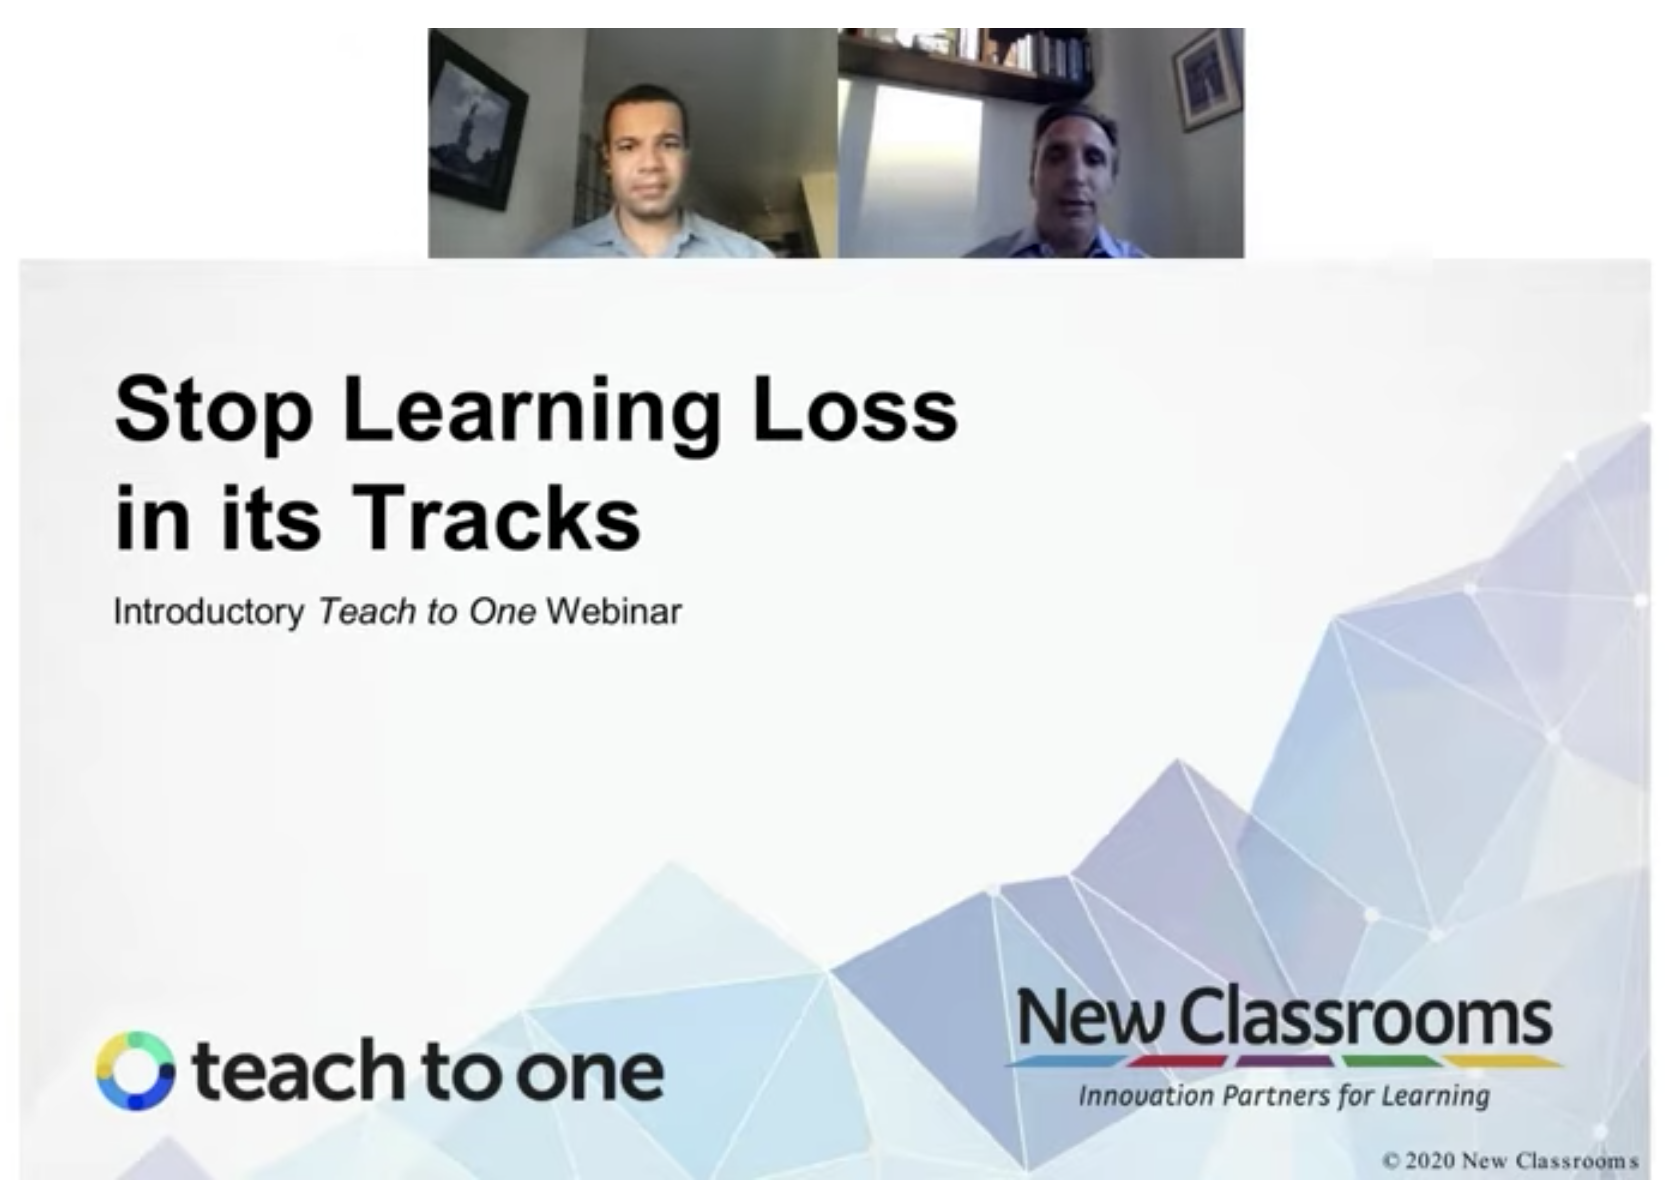 Stop learning loss in its tracks